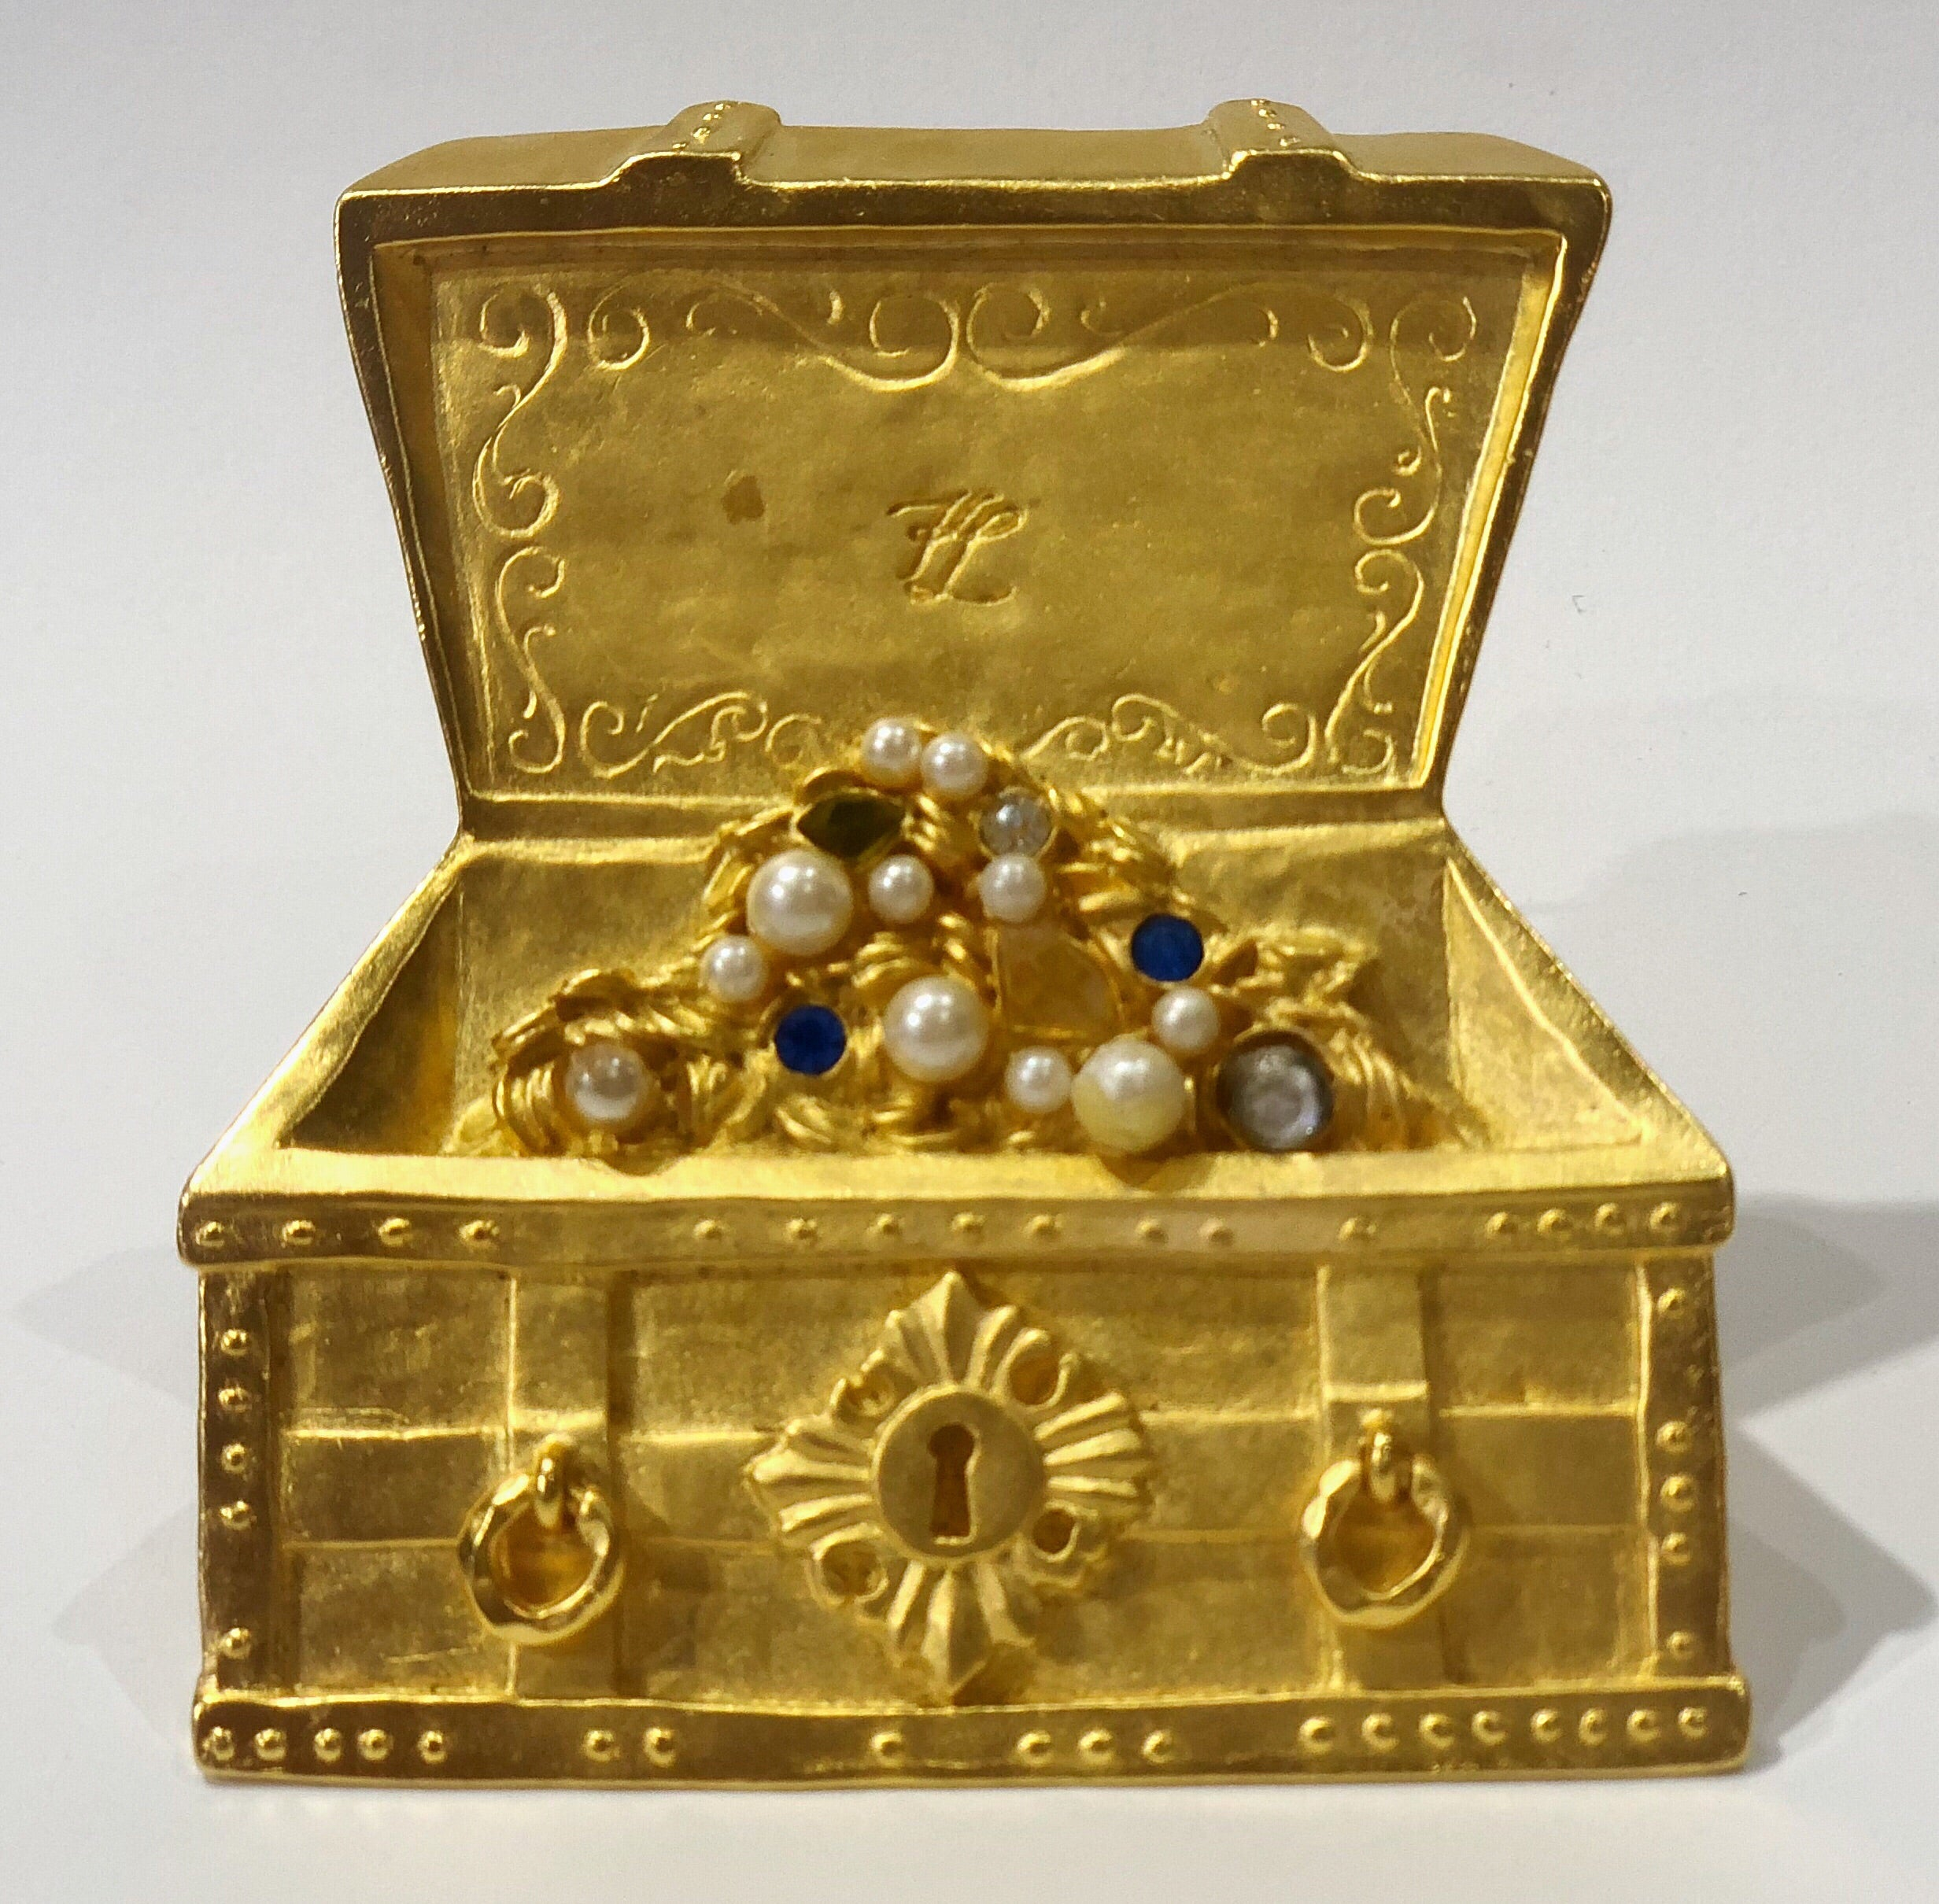 Karl Lagerfeld treasure chest brooch